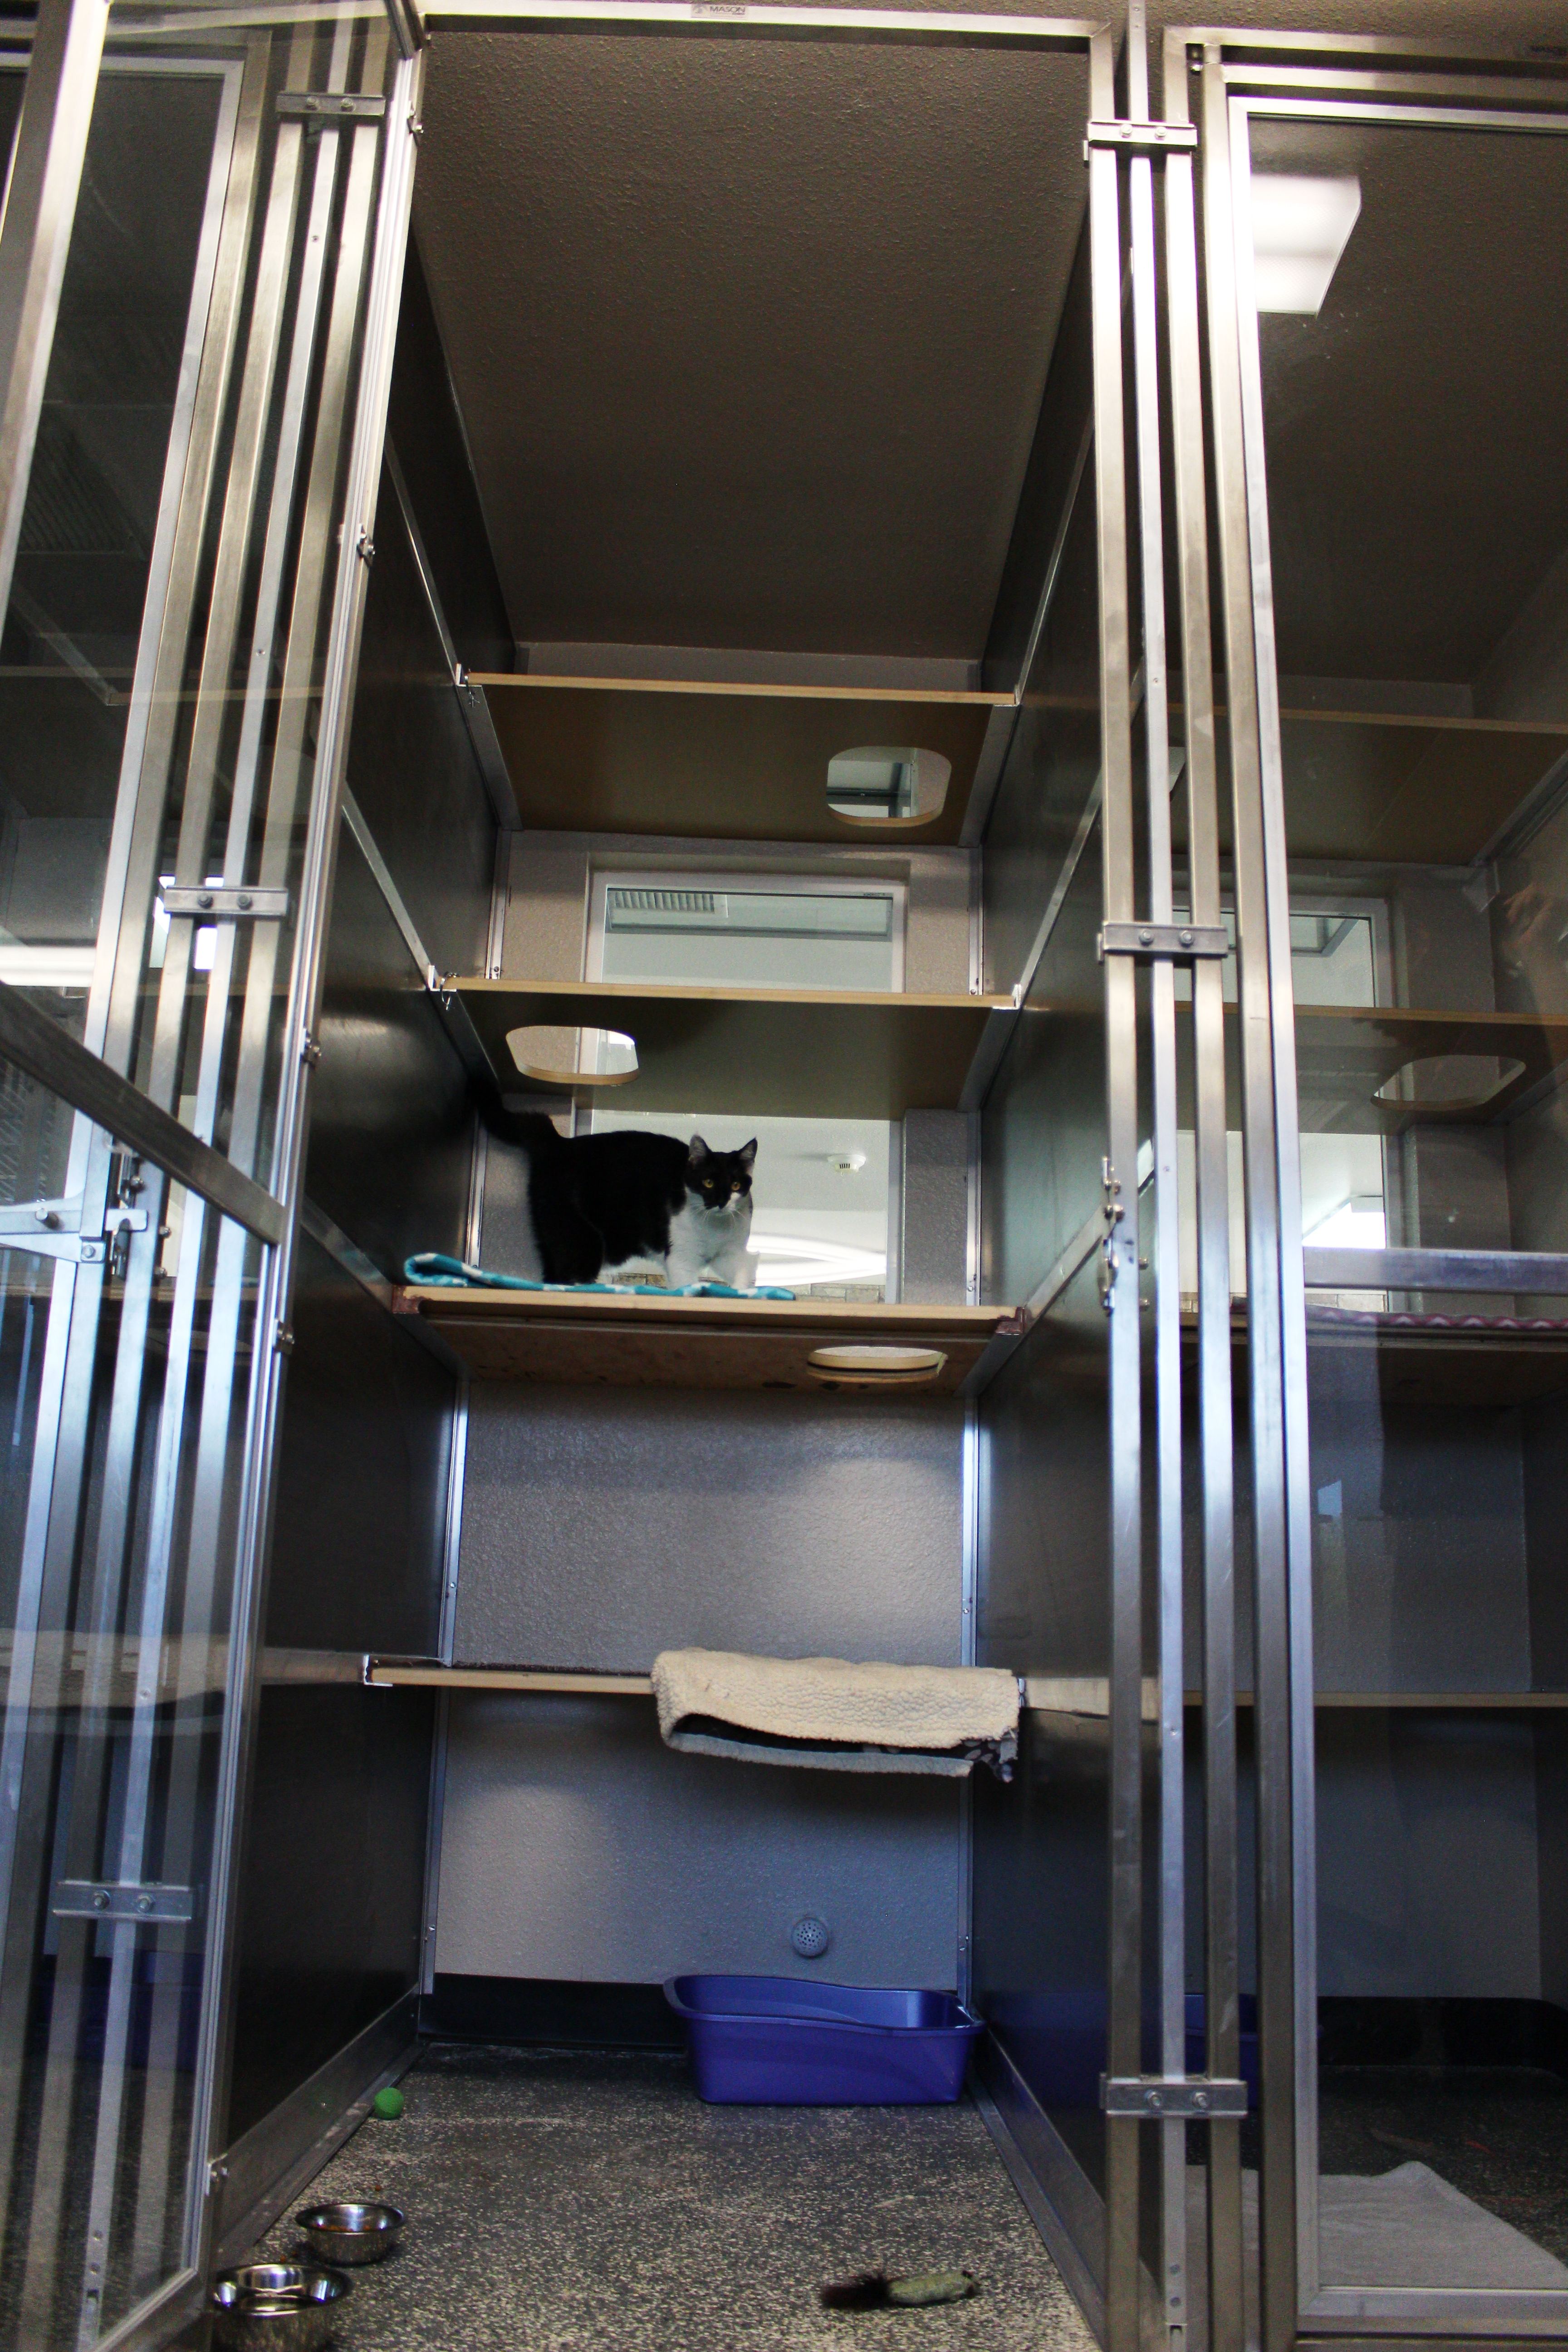 Our new suites are super spacious so that your furry kitty has plenty of room while they vacation with us in our kitty condos.